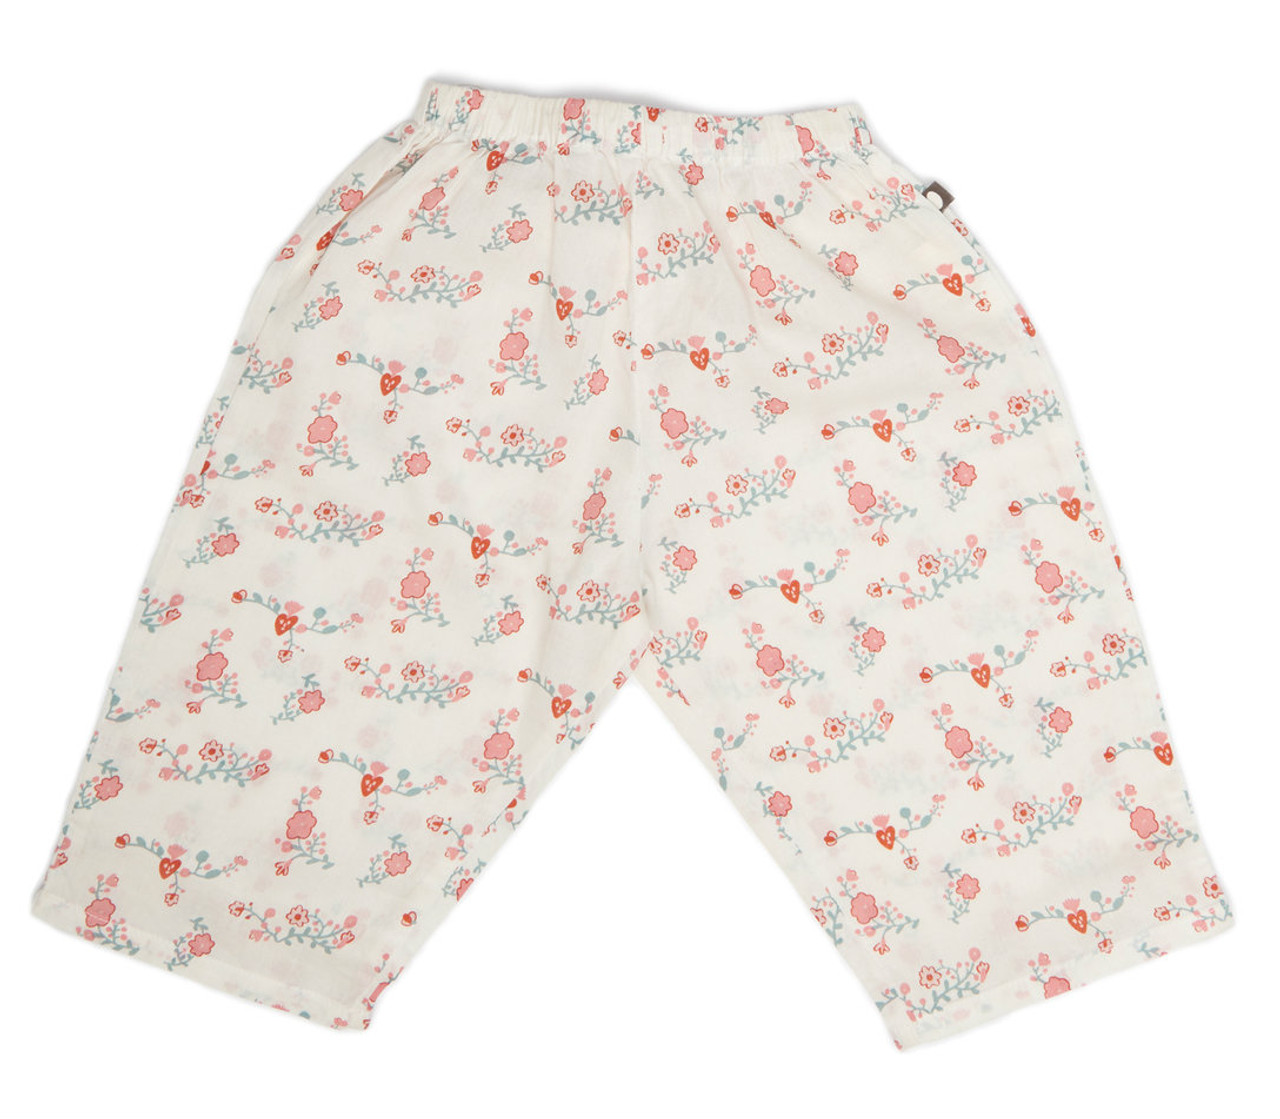 cb1201ee1a32 Oeuf baby pants white flowers spearmint ventures llc jpg 1088x951 White  flowers shorts